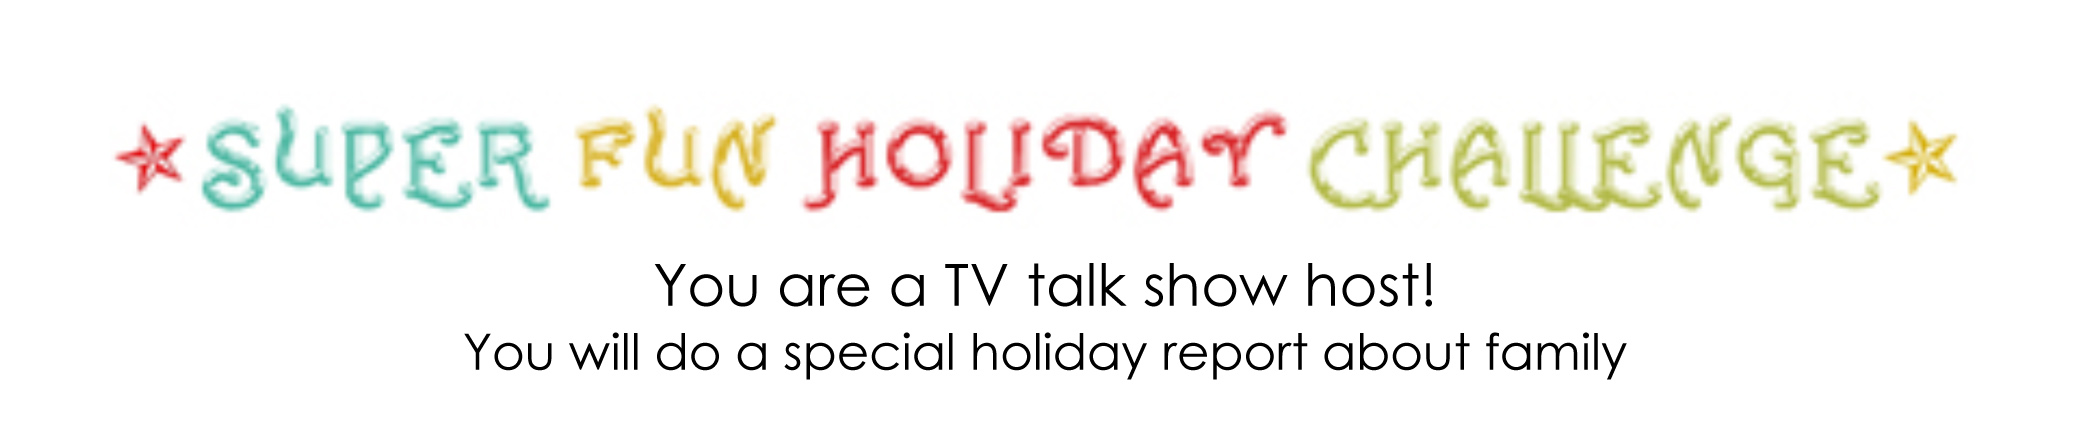 Microsoft Word - Super Fun Holiday Challenge.docx